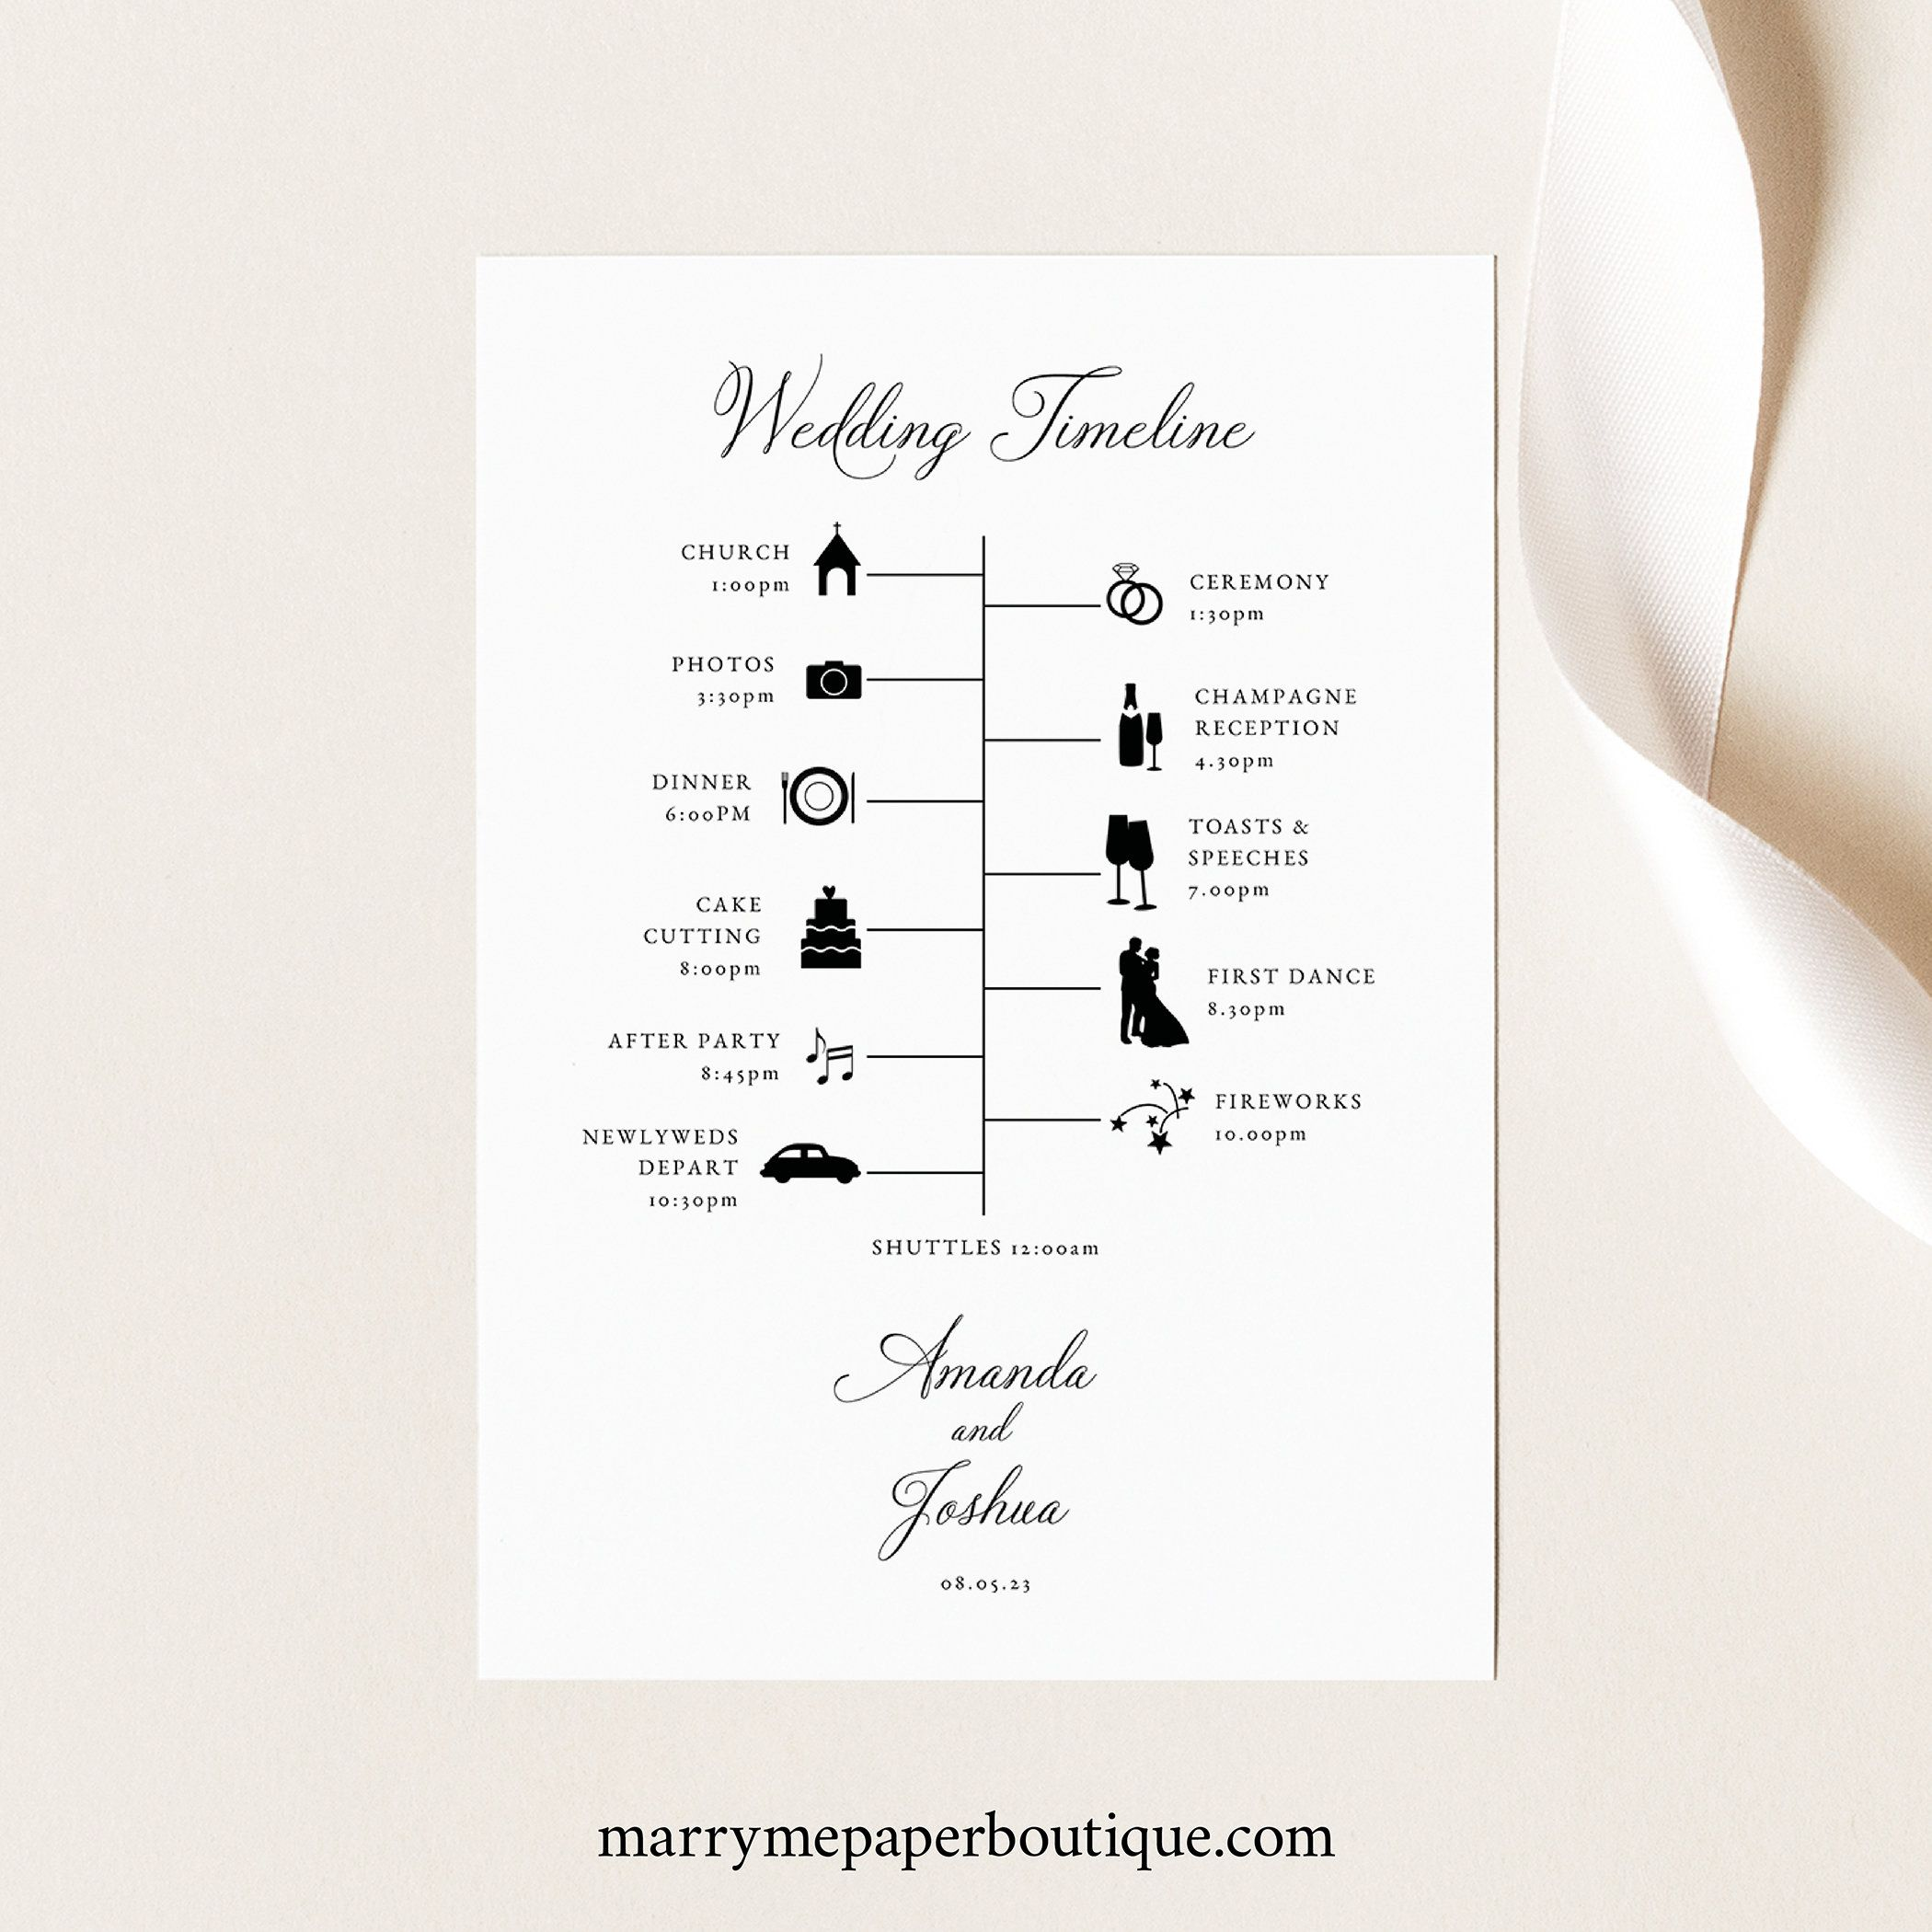 Wedding Timeline Card Template Traditional Wedding Etsy In 2021 Wedding Timeline Wedding Itinerary Traditional Wedding